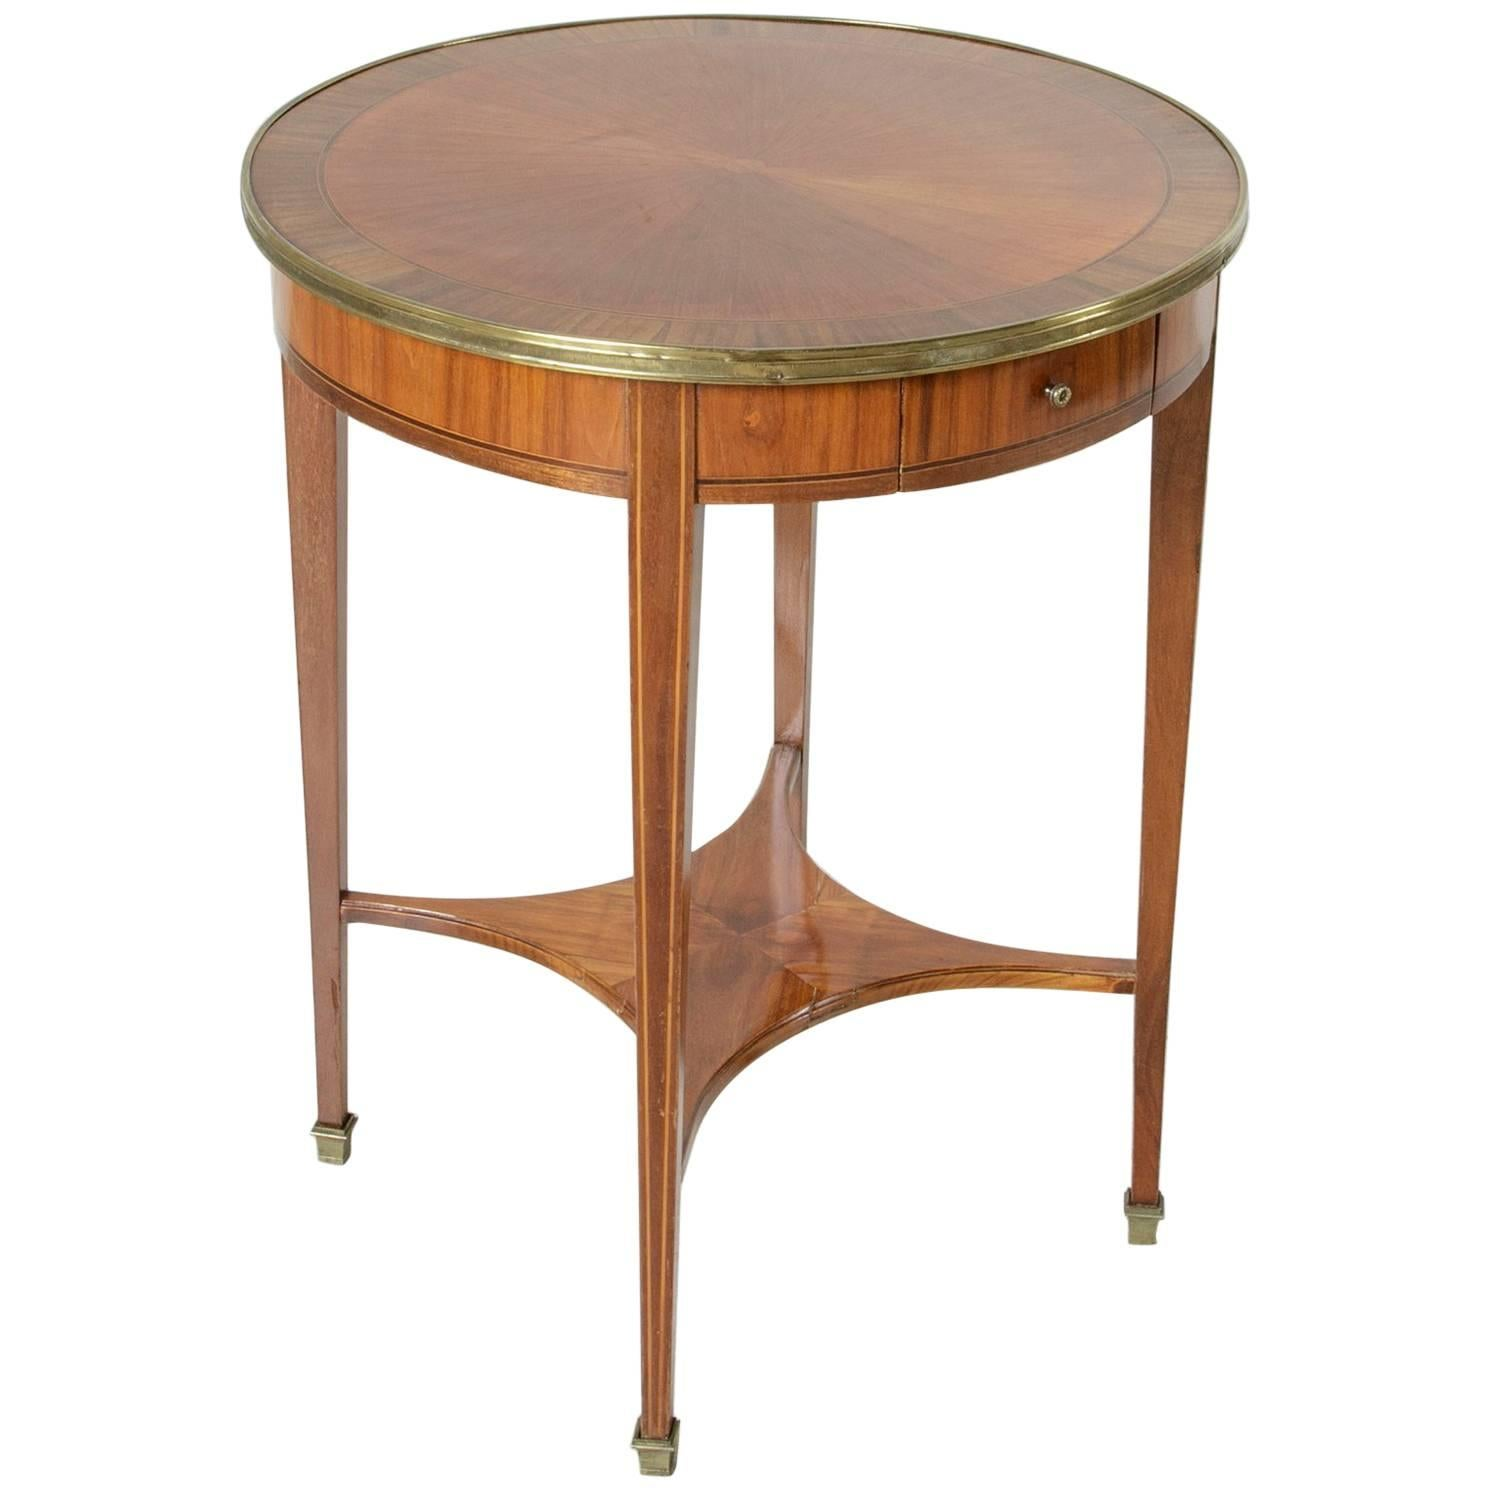 gueridon maison du monde mange debout solea tout alu. Black Bedroom Furniture Sets. Home Design Ideas